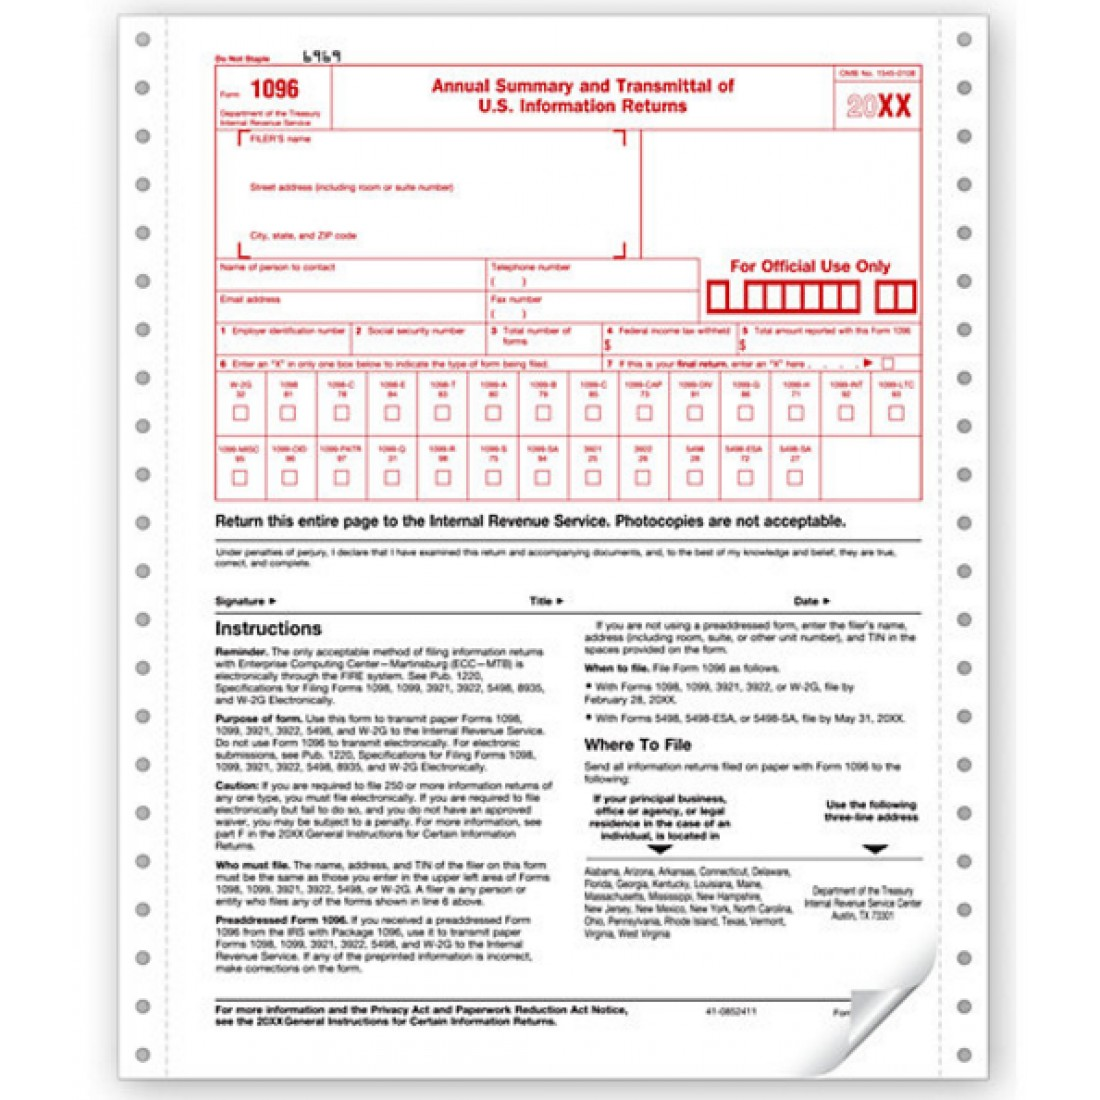 Summary & Transmittal Sheet